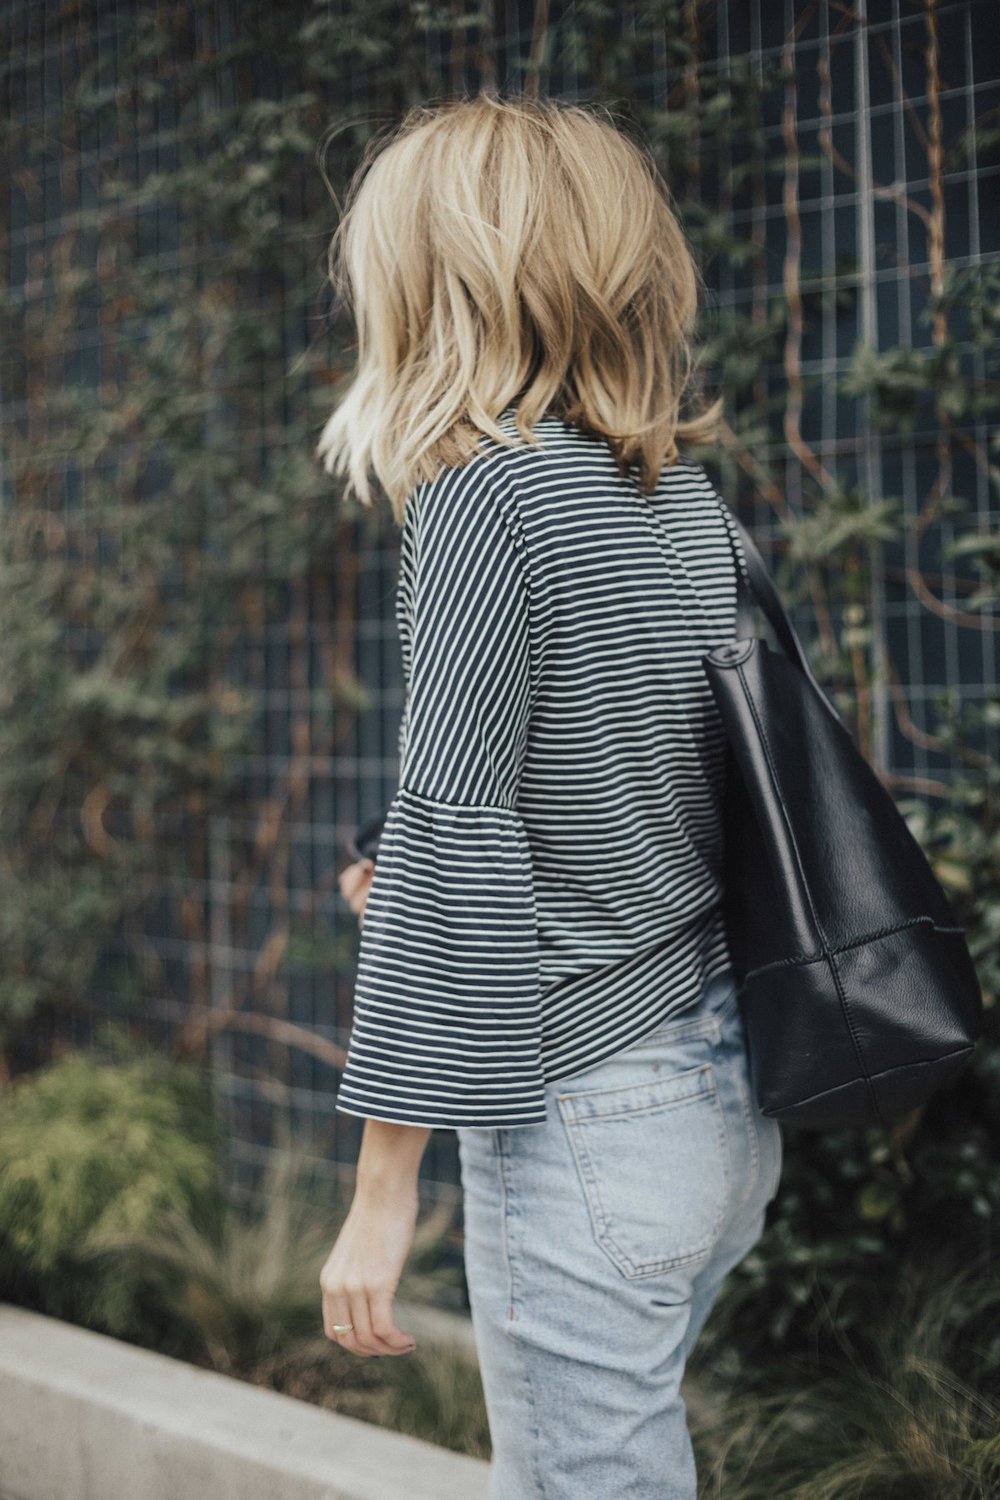 Stripes and Bells | truelane